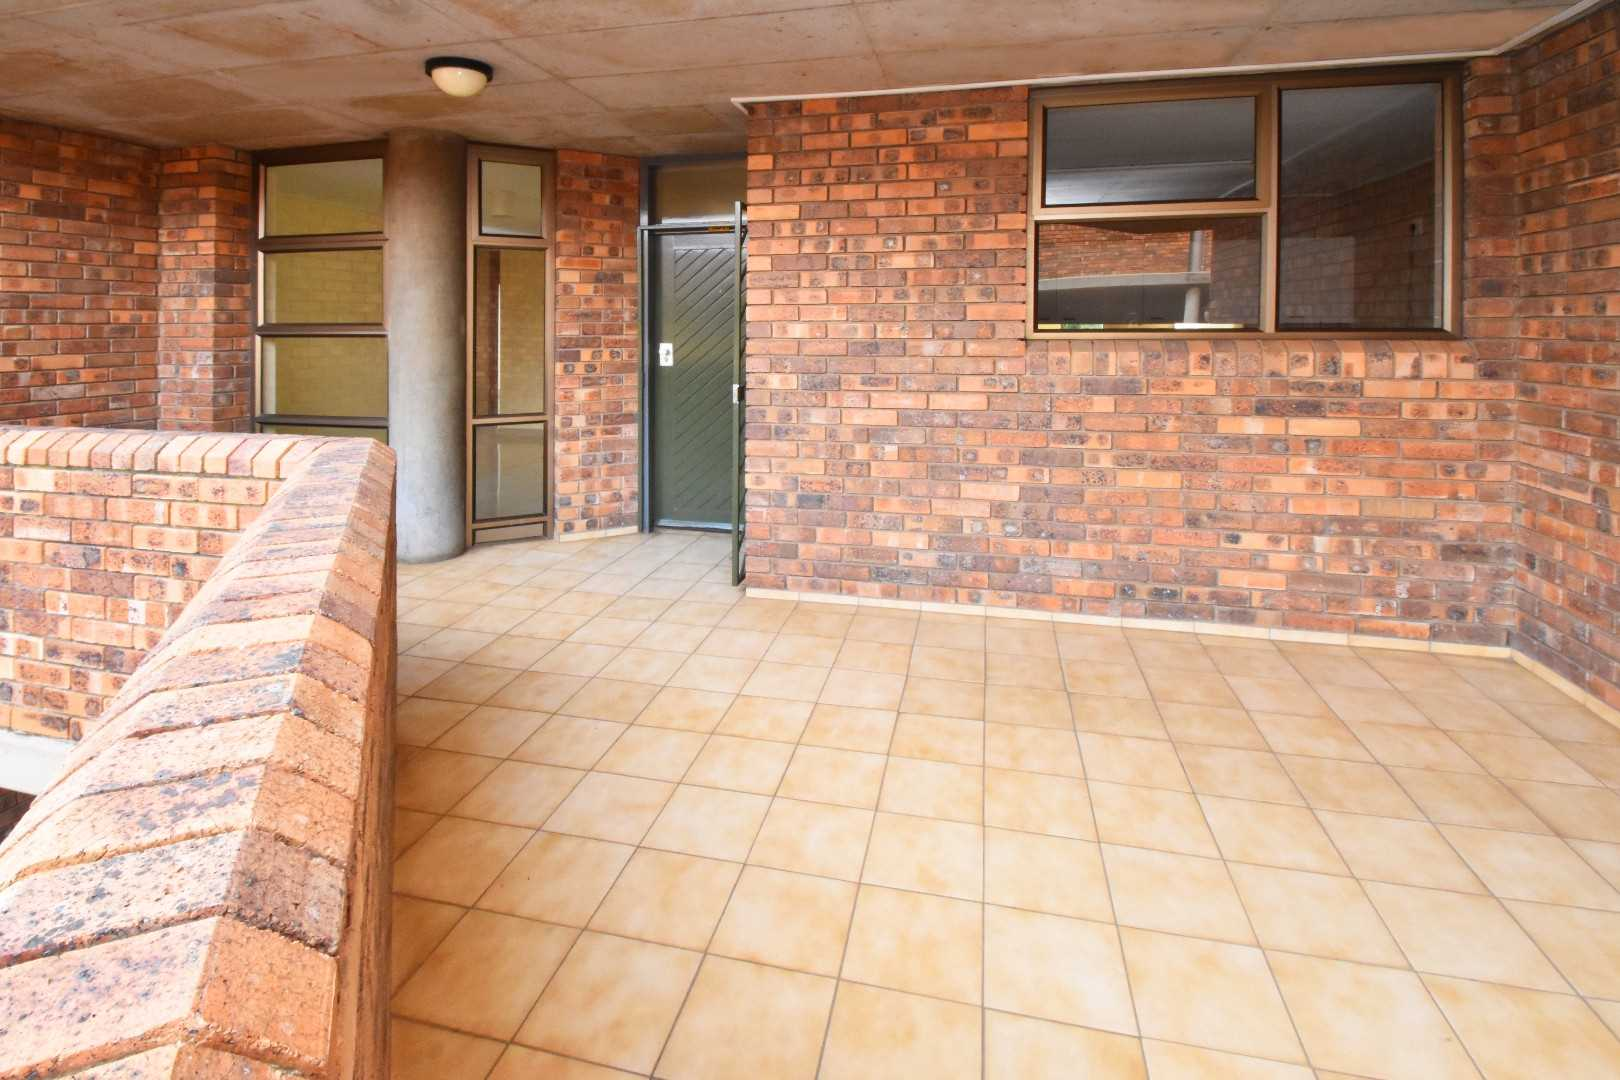 Building well thought out, leaving every tenant with a sense of privacy and space